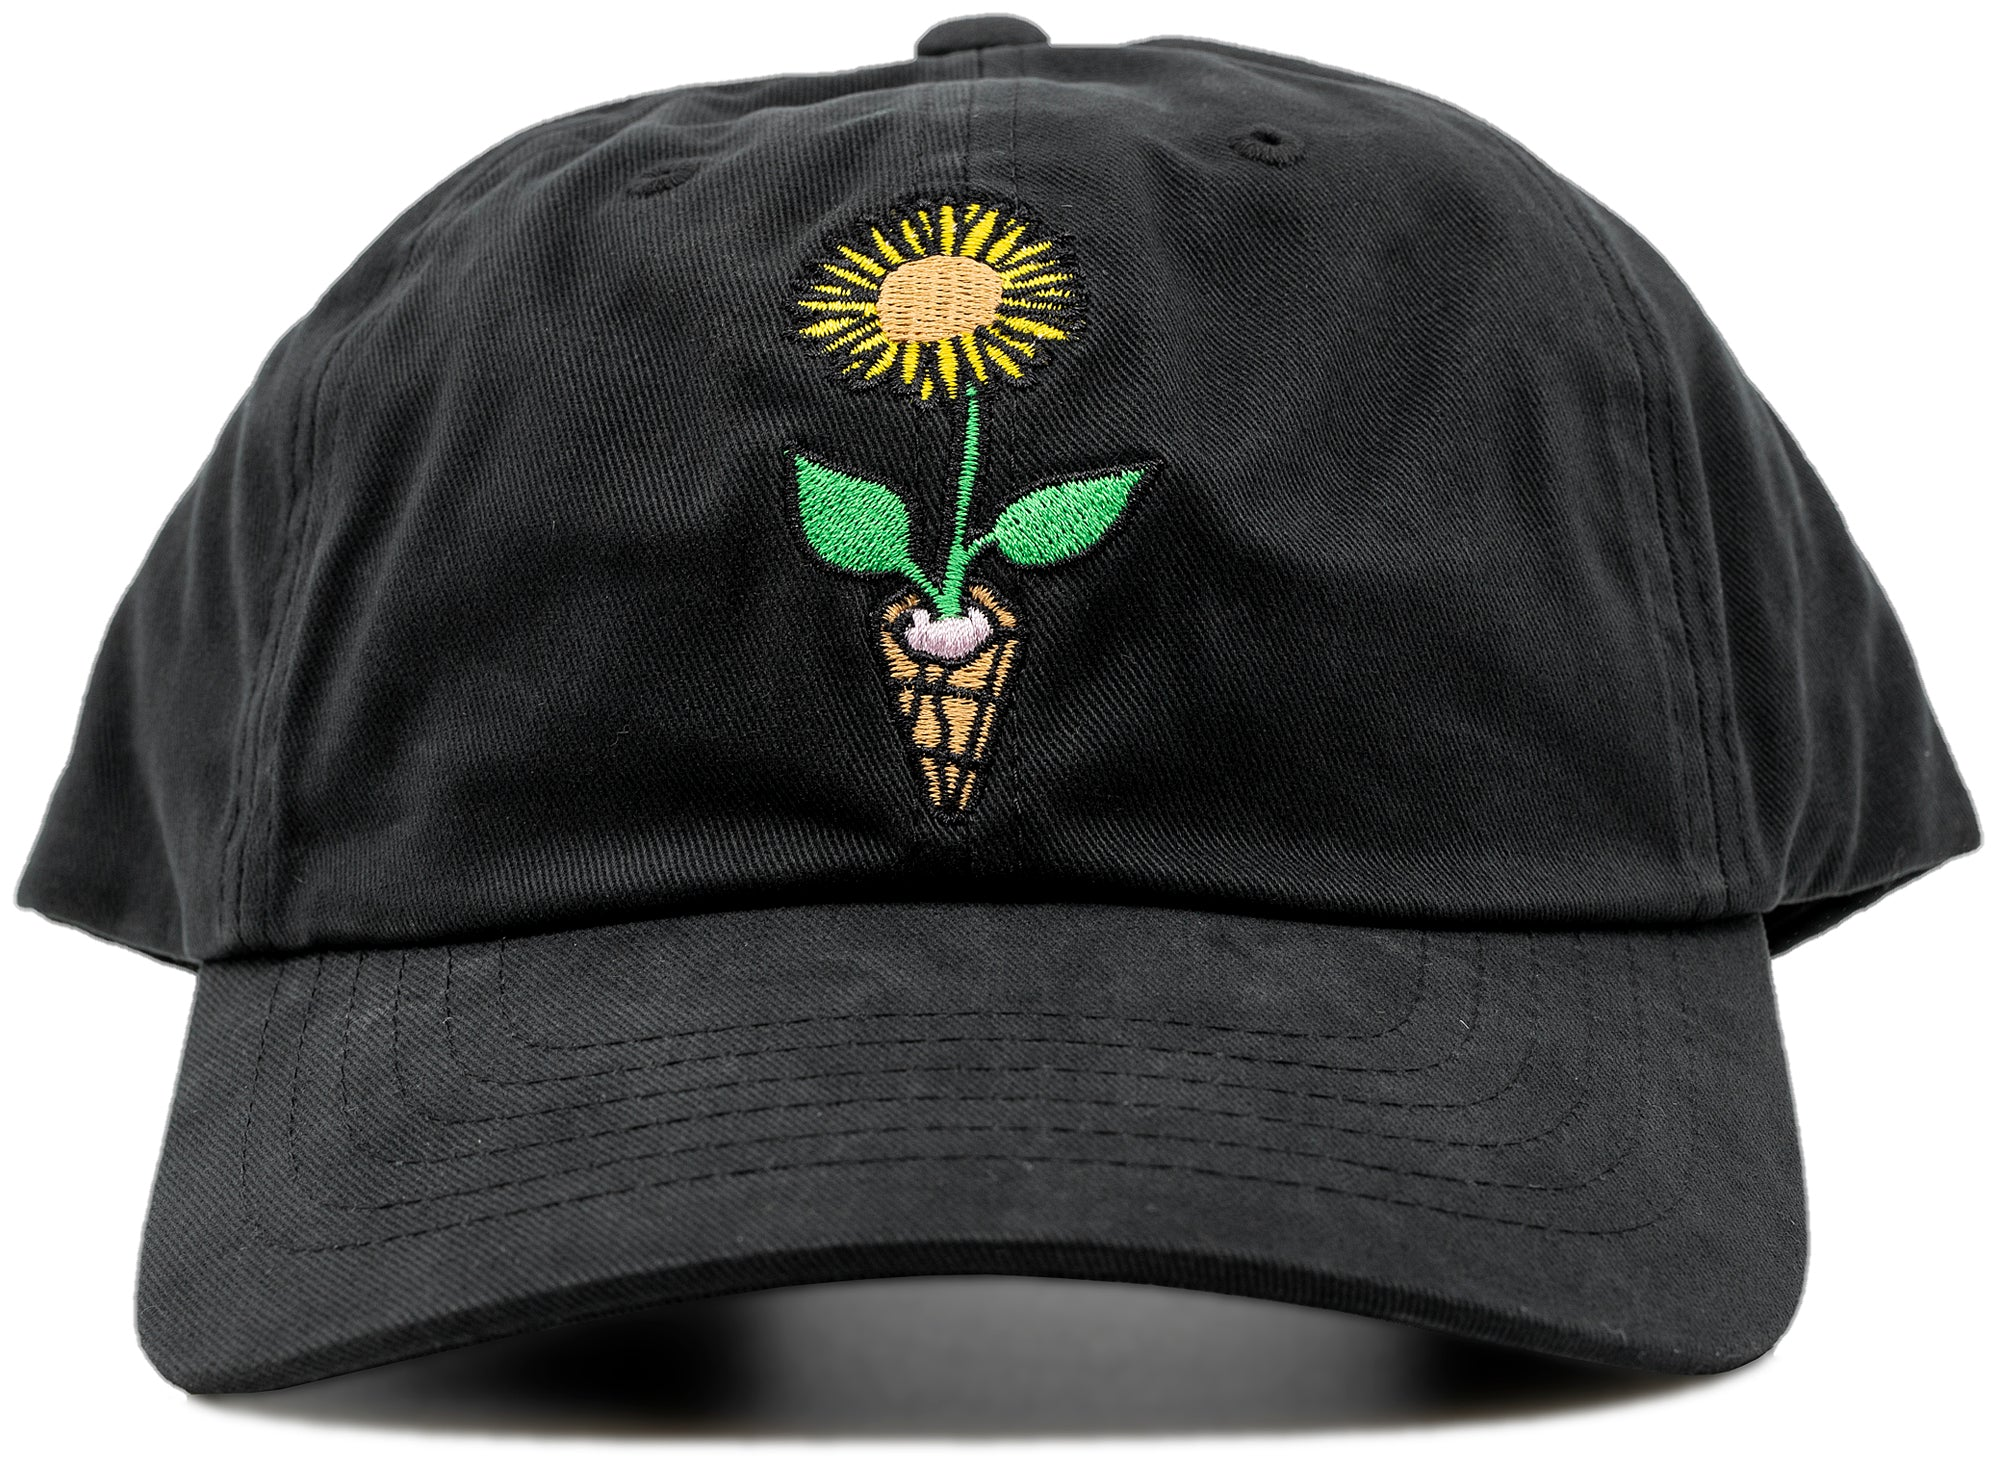 Ice Cream Plant Based Dad Hat xld